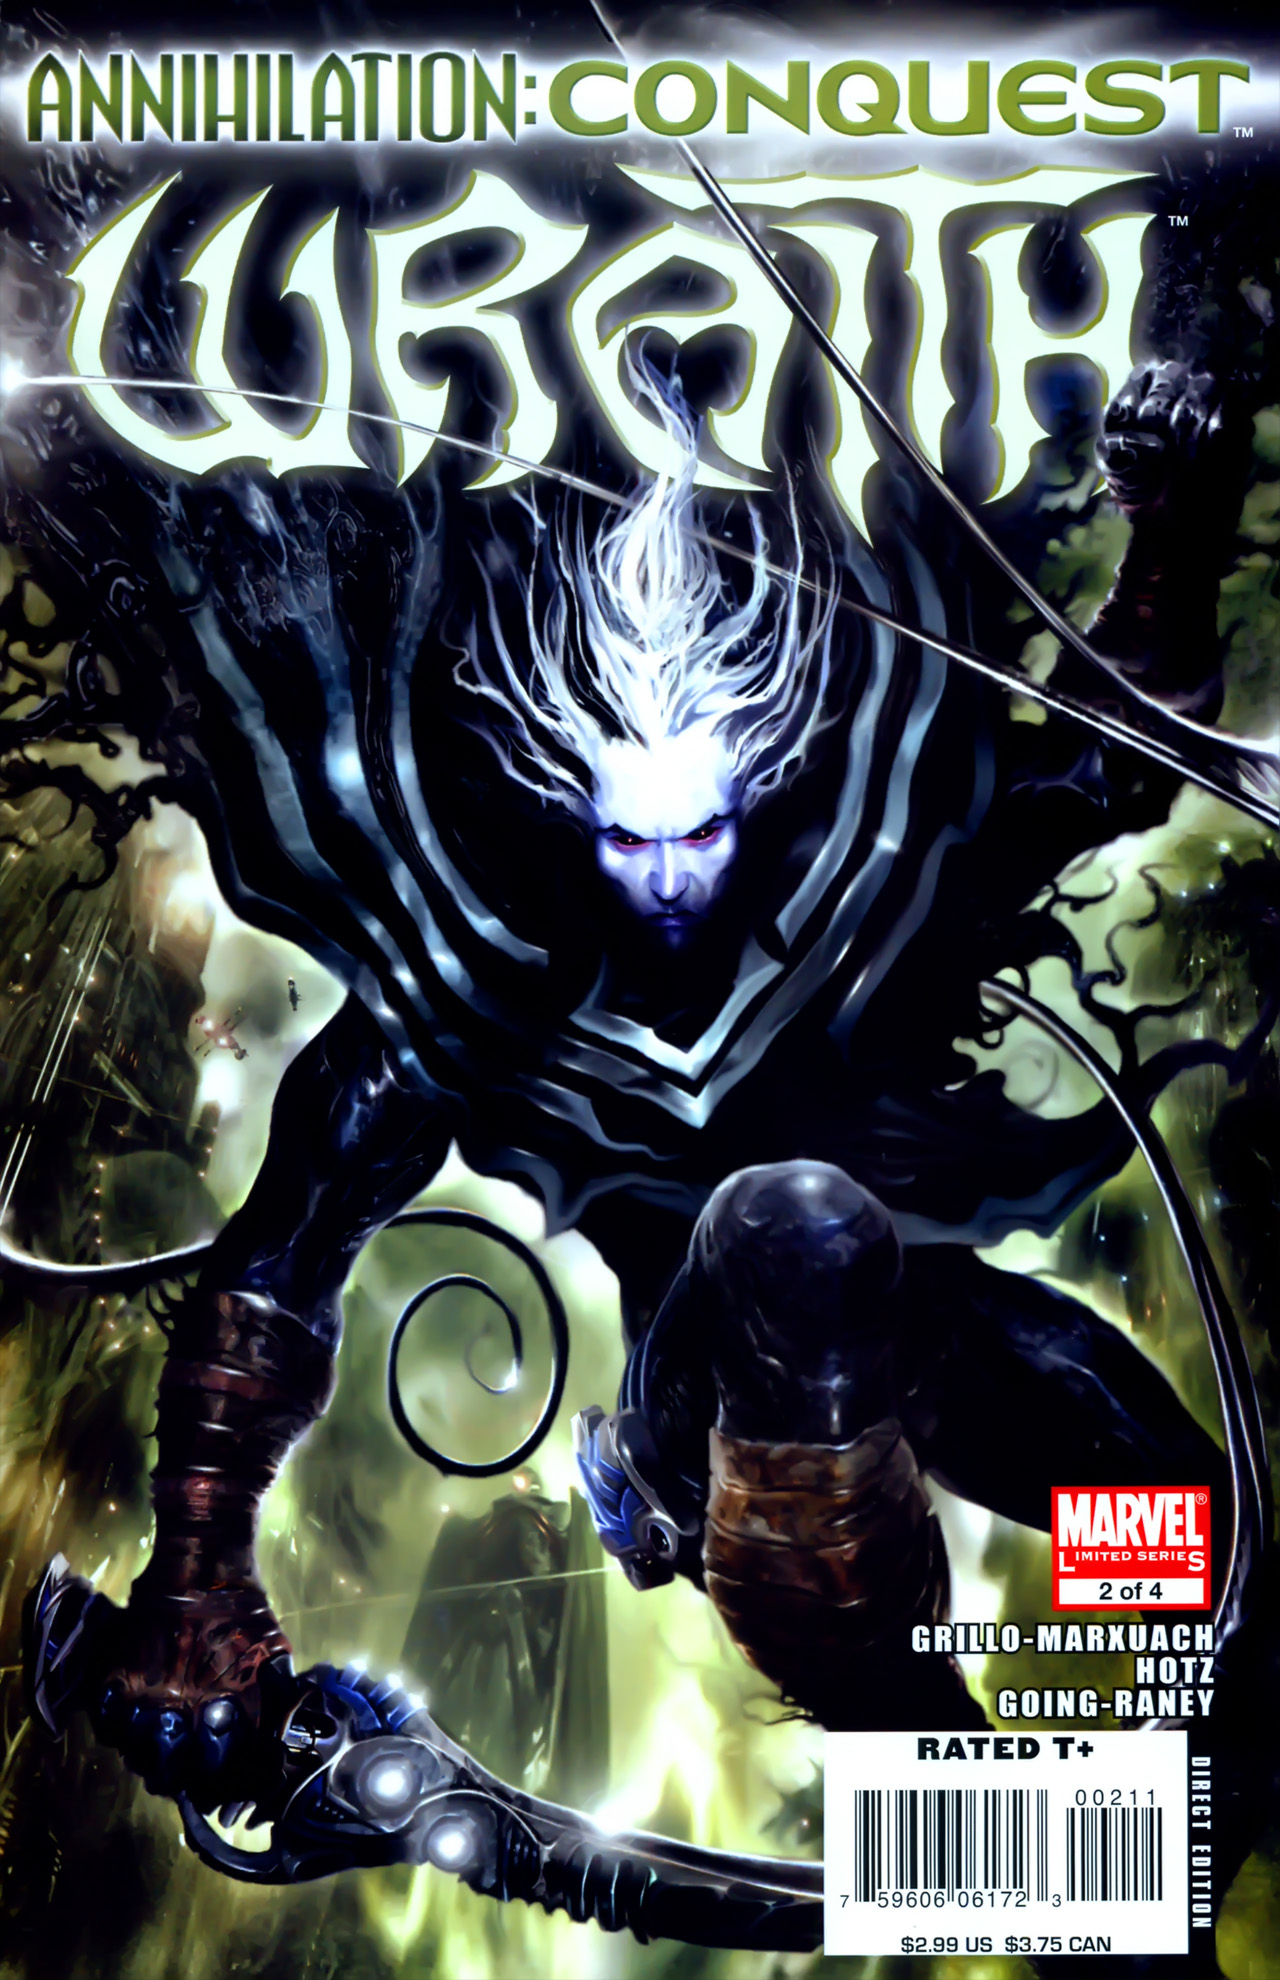 Annihilation: Conquest - Wraith Vol 1 2